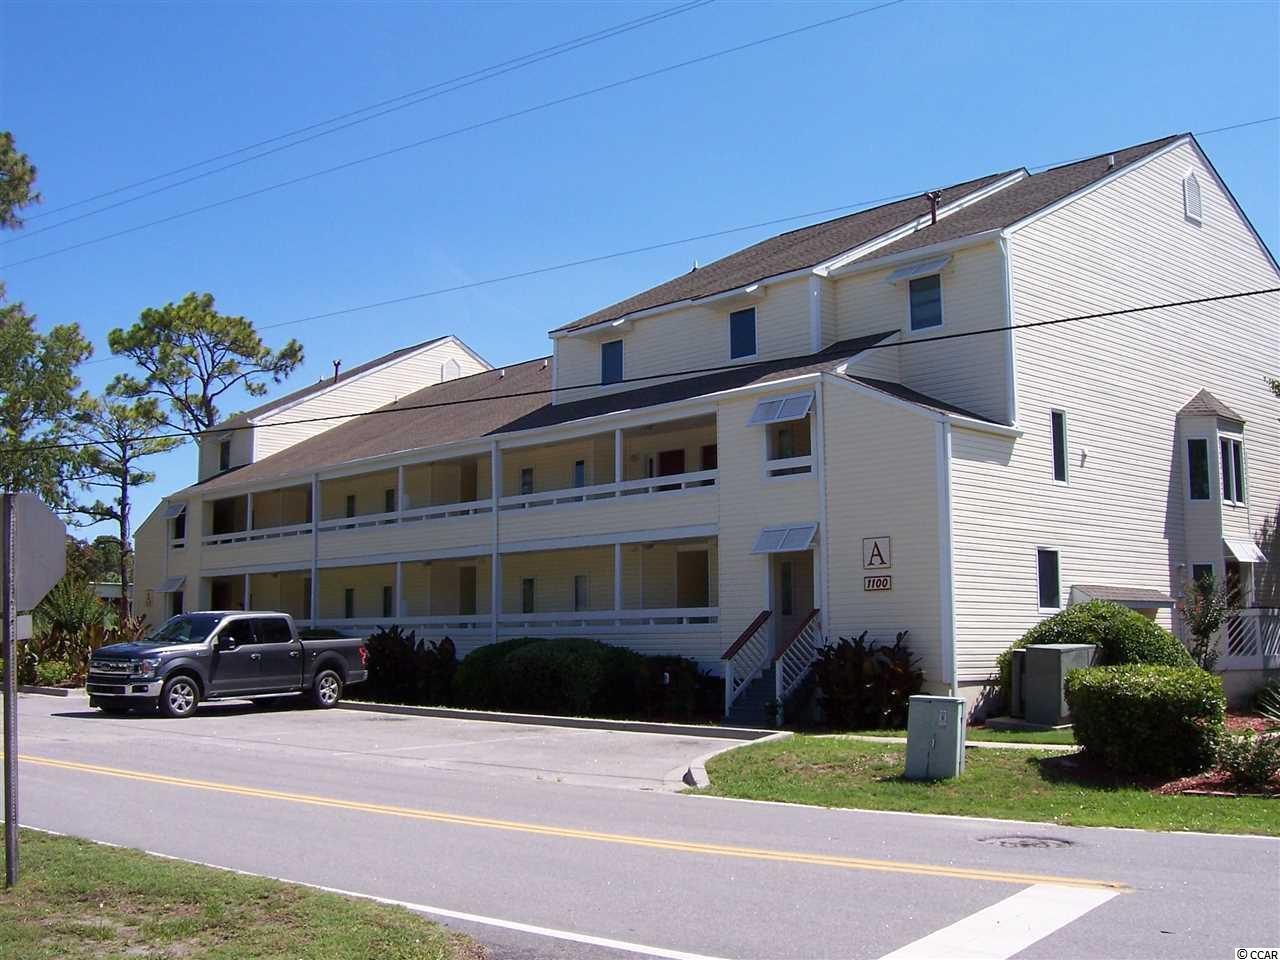 Looking for an inexpensive place at the beach? How about this first floor condo wrapped around the golf course with swimming pool and tennis courts just steps away. Only minutes to the beach and the Main Street festivities. Great location near ball parks, community center and everything North Myrtle Beach has to offer. This is a great buy! One bedroom with a full bathroom and also a guest half bath room. Spacious living room and screened in porch , All Tile throughout . Great location for a second home or place for someone with kids. and comes partially  furnished.Call for a showing today before it's gone.